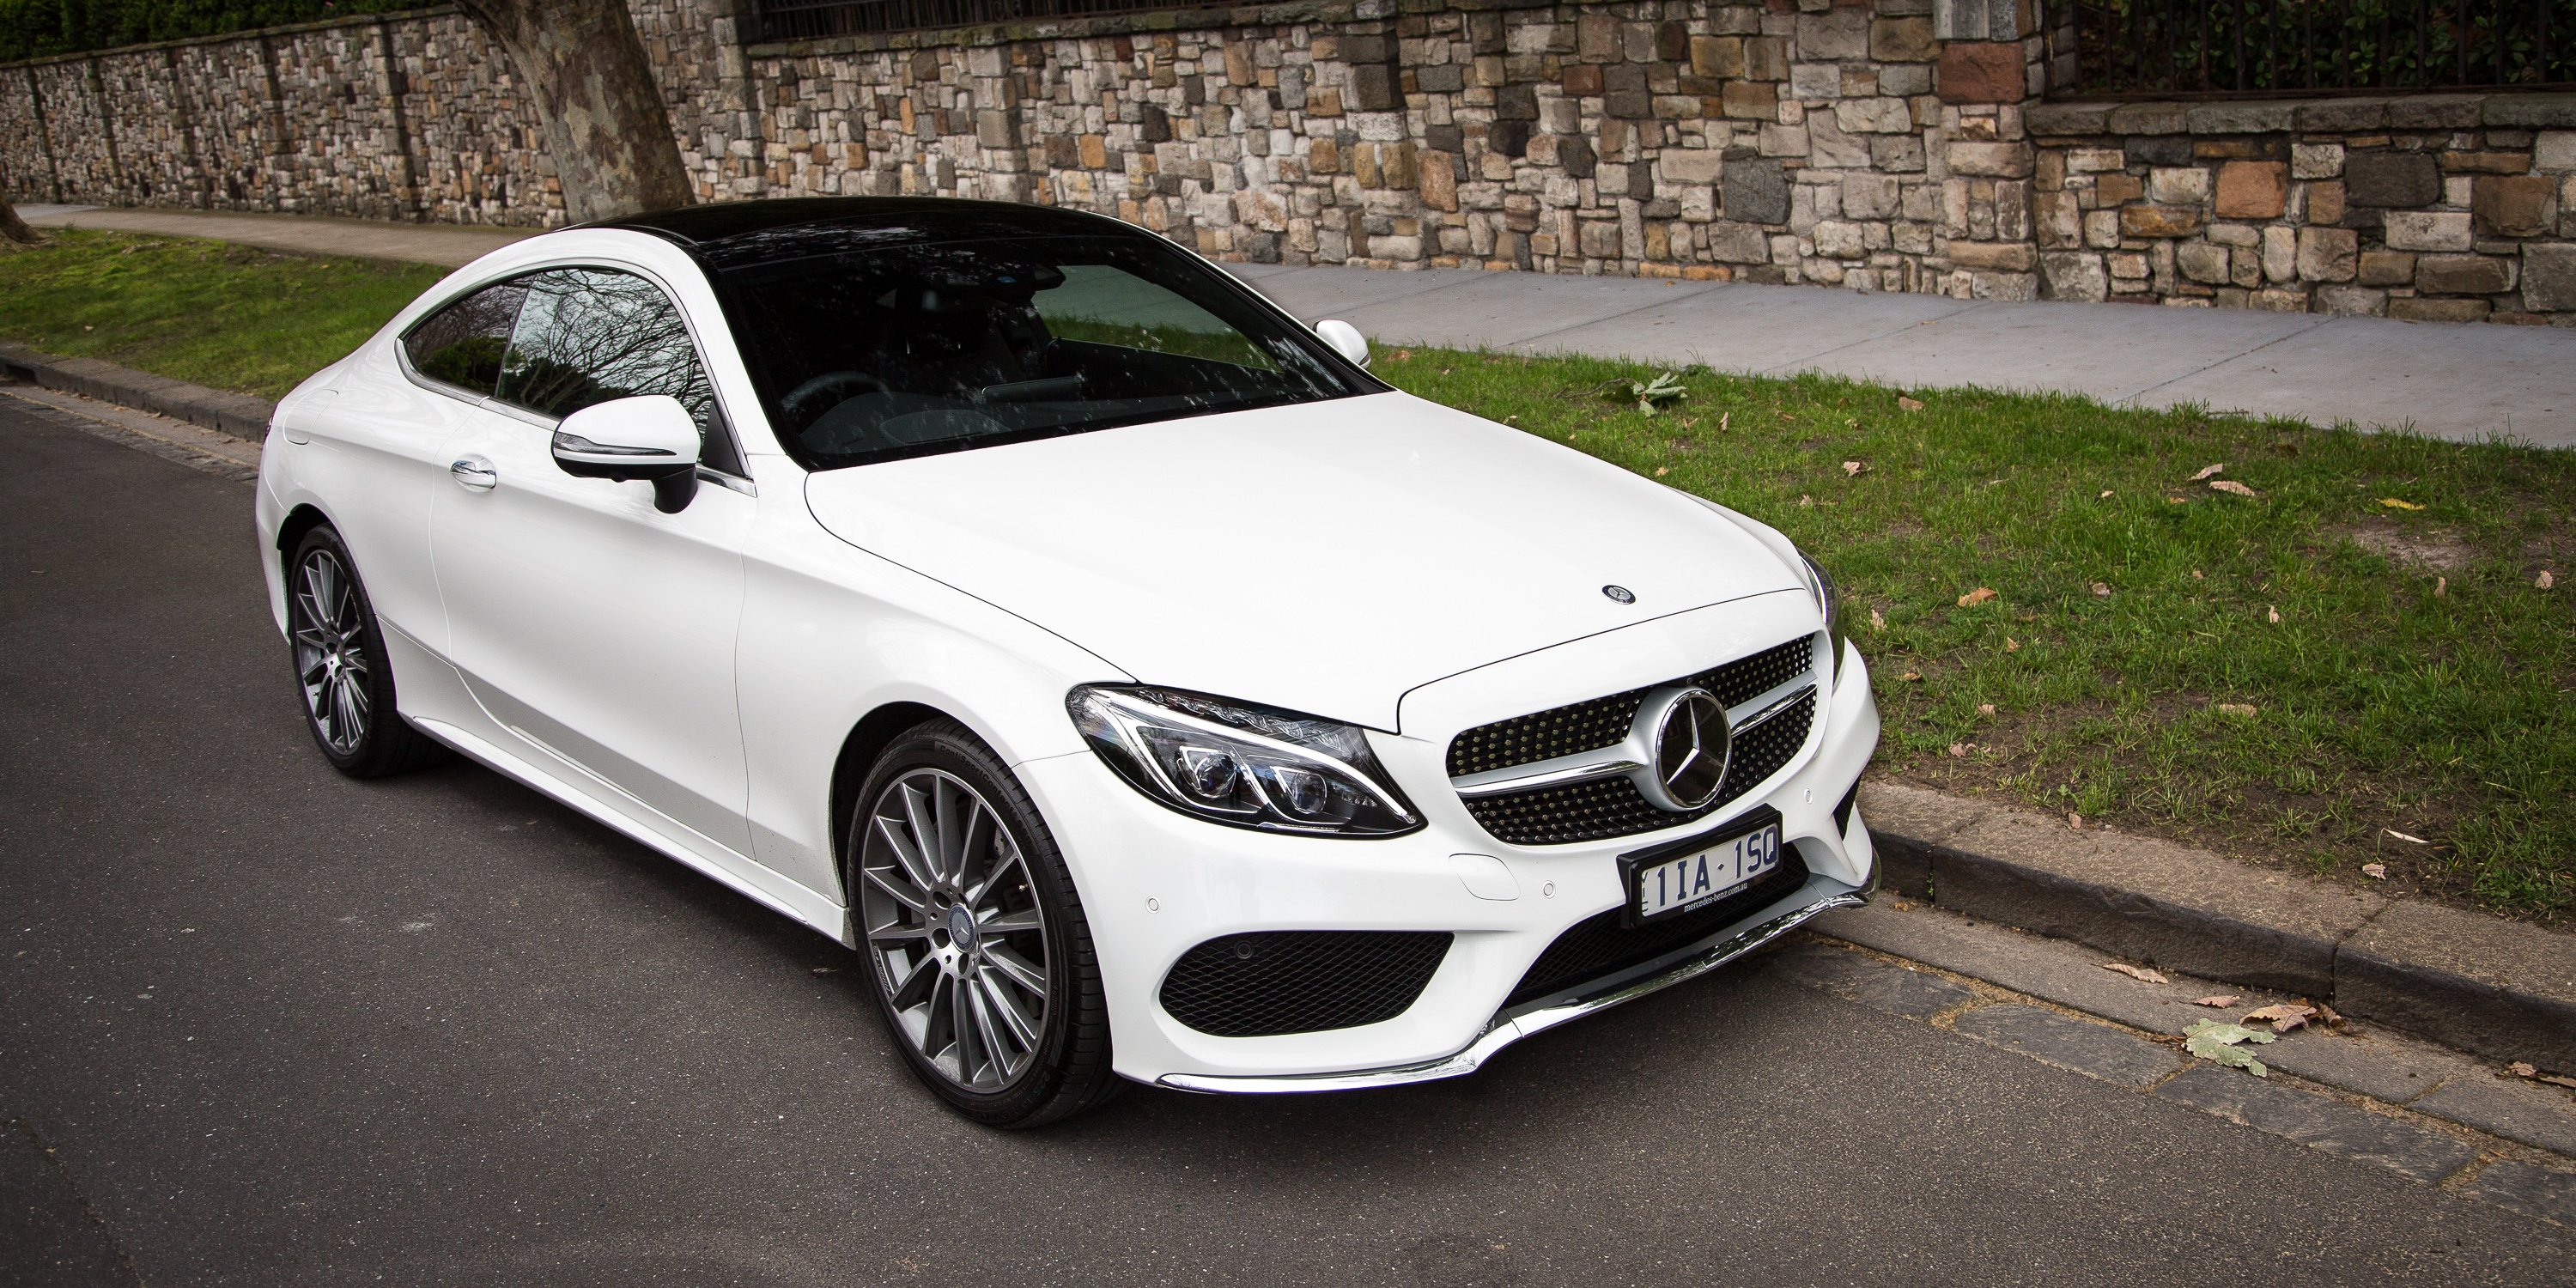 2016 Mercedes-Benz C300 Coupe: Long-term report three ...